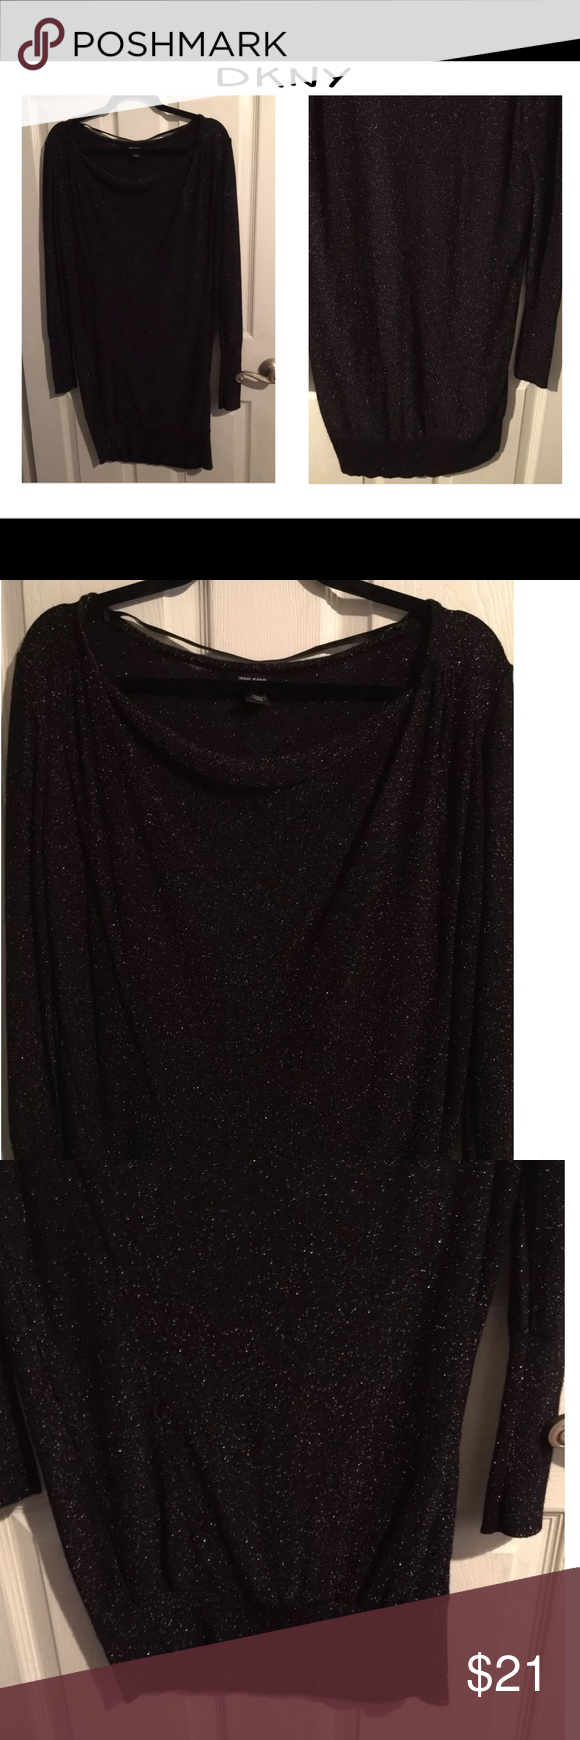 Dkny black gold metallic excellent used condition dkny black gold